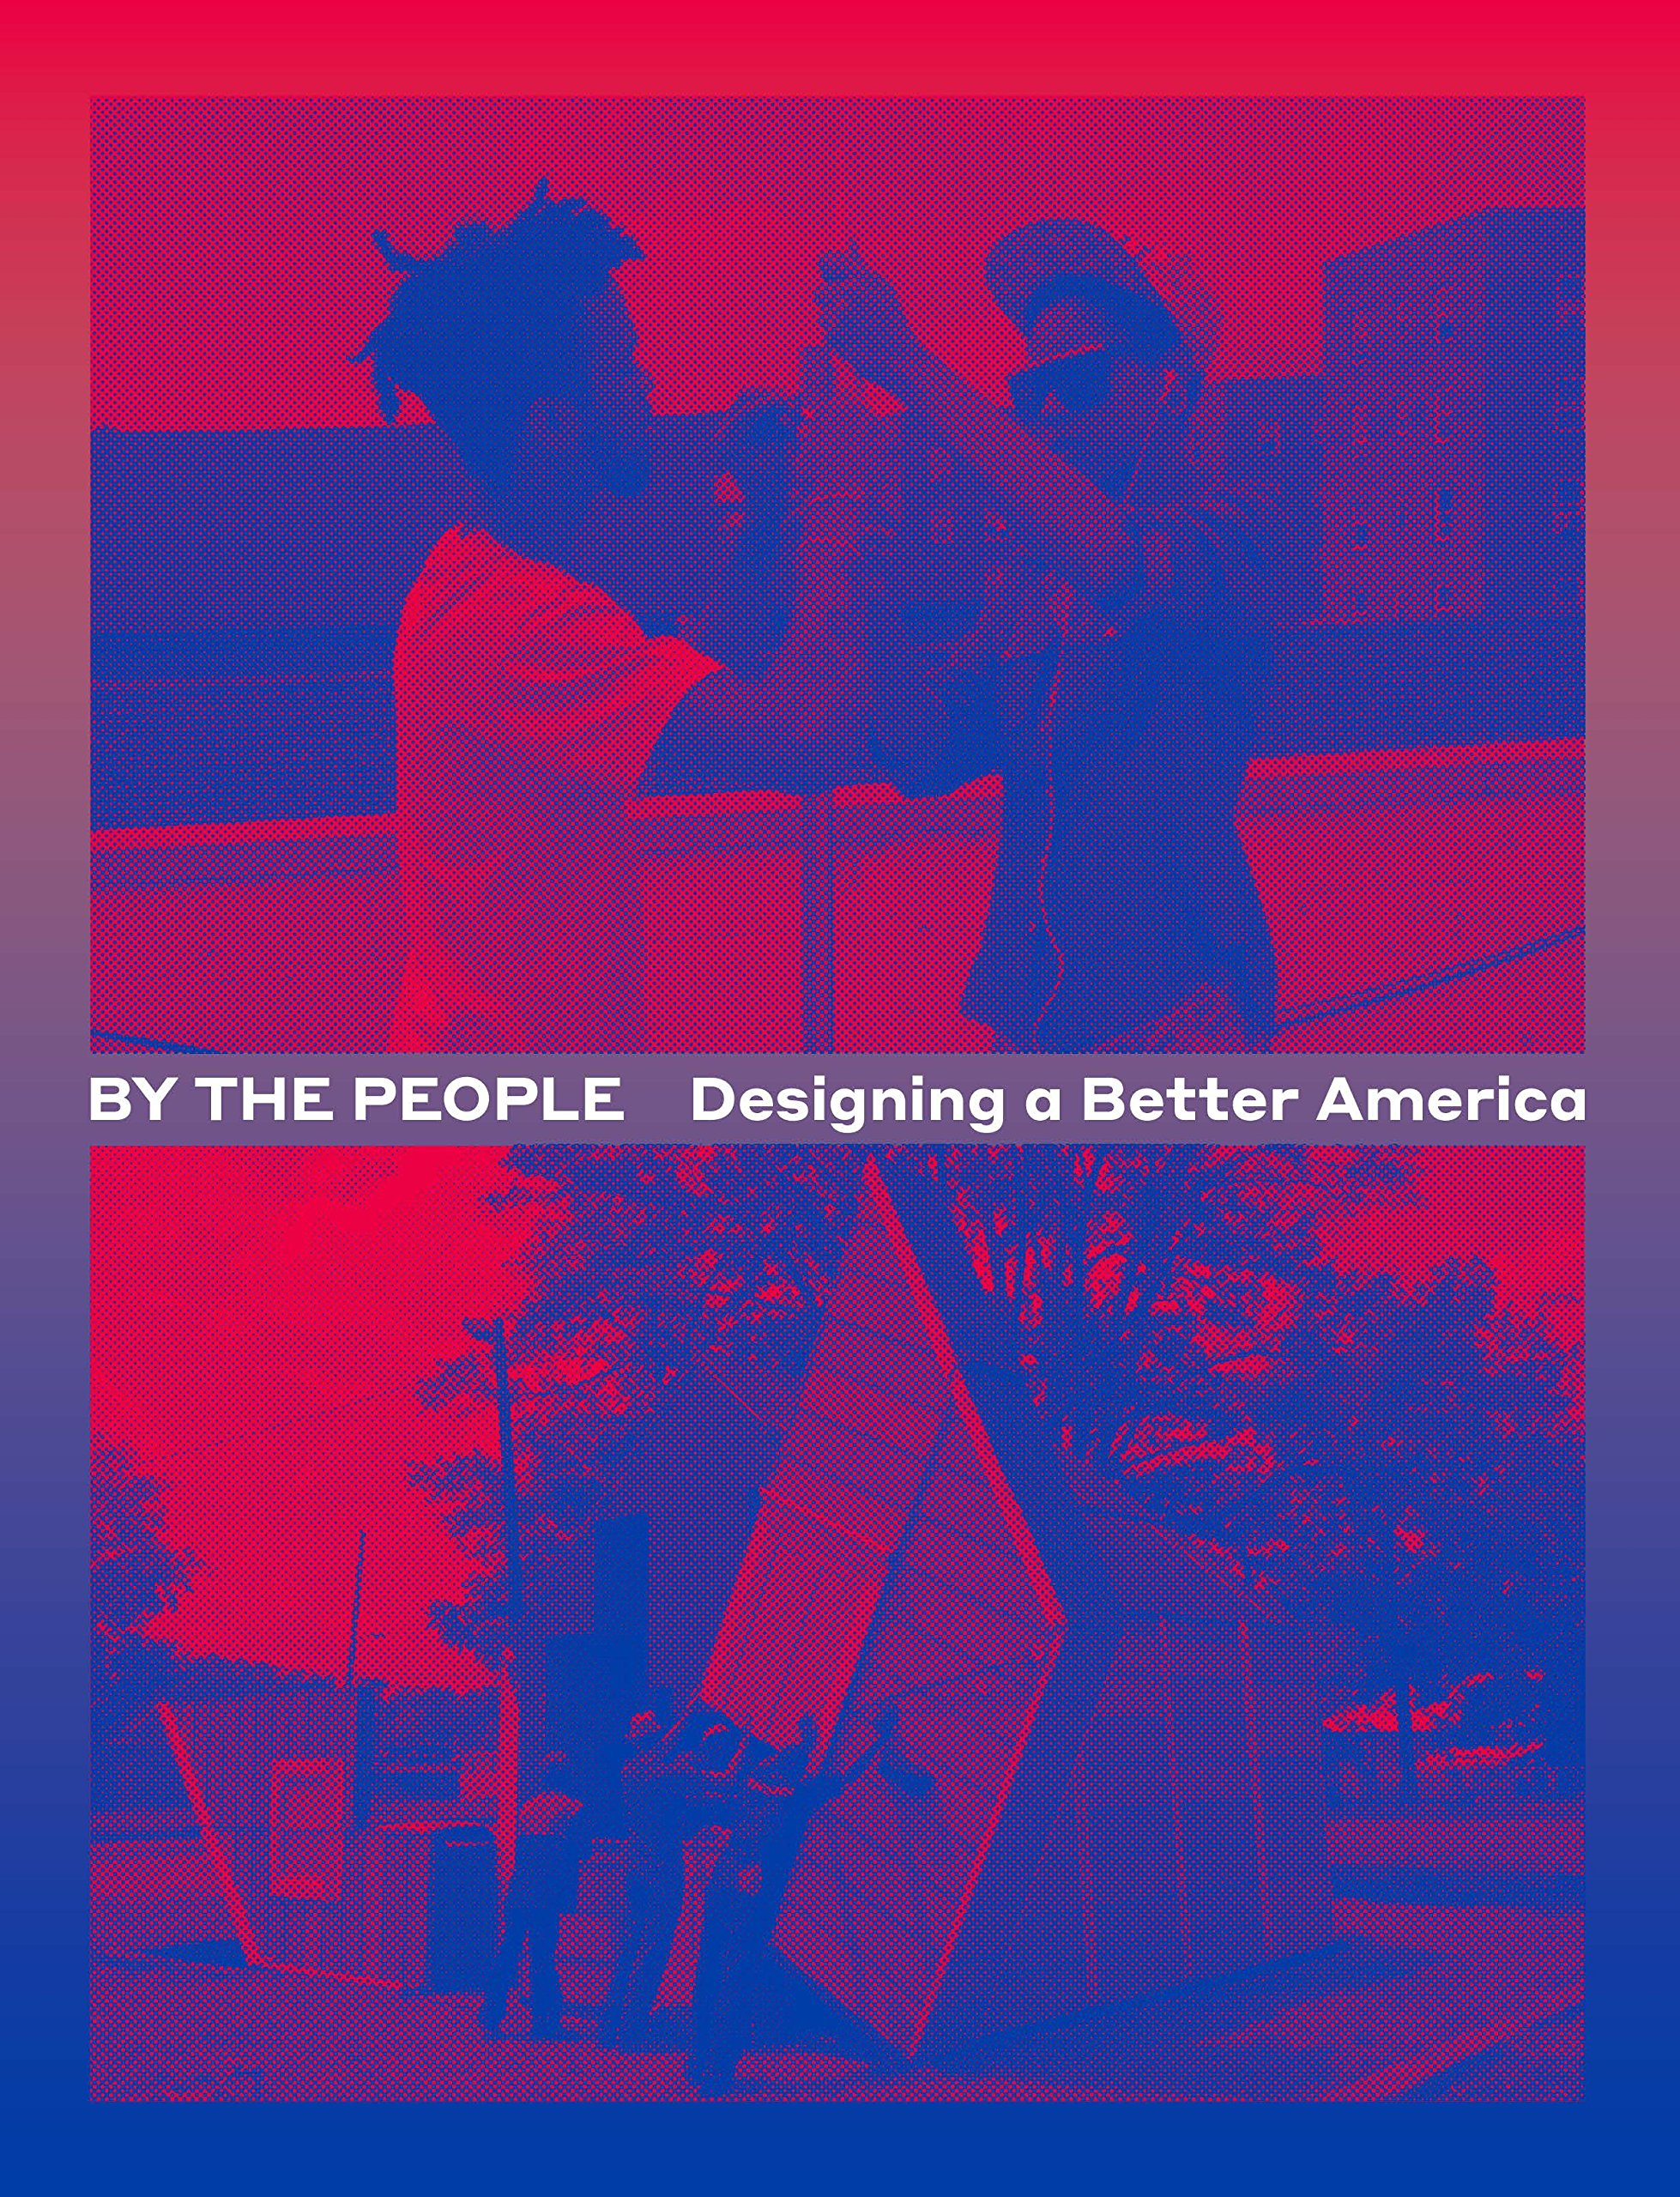 By the People: Designing a Better America